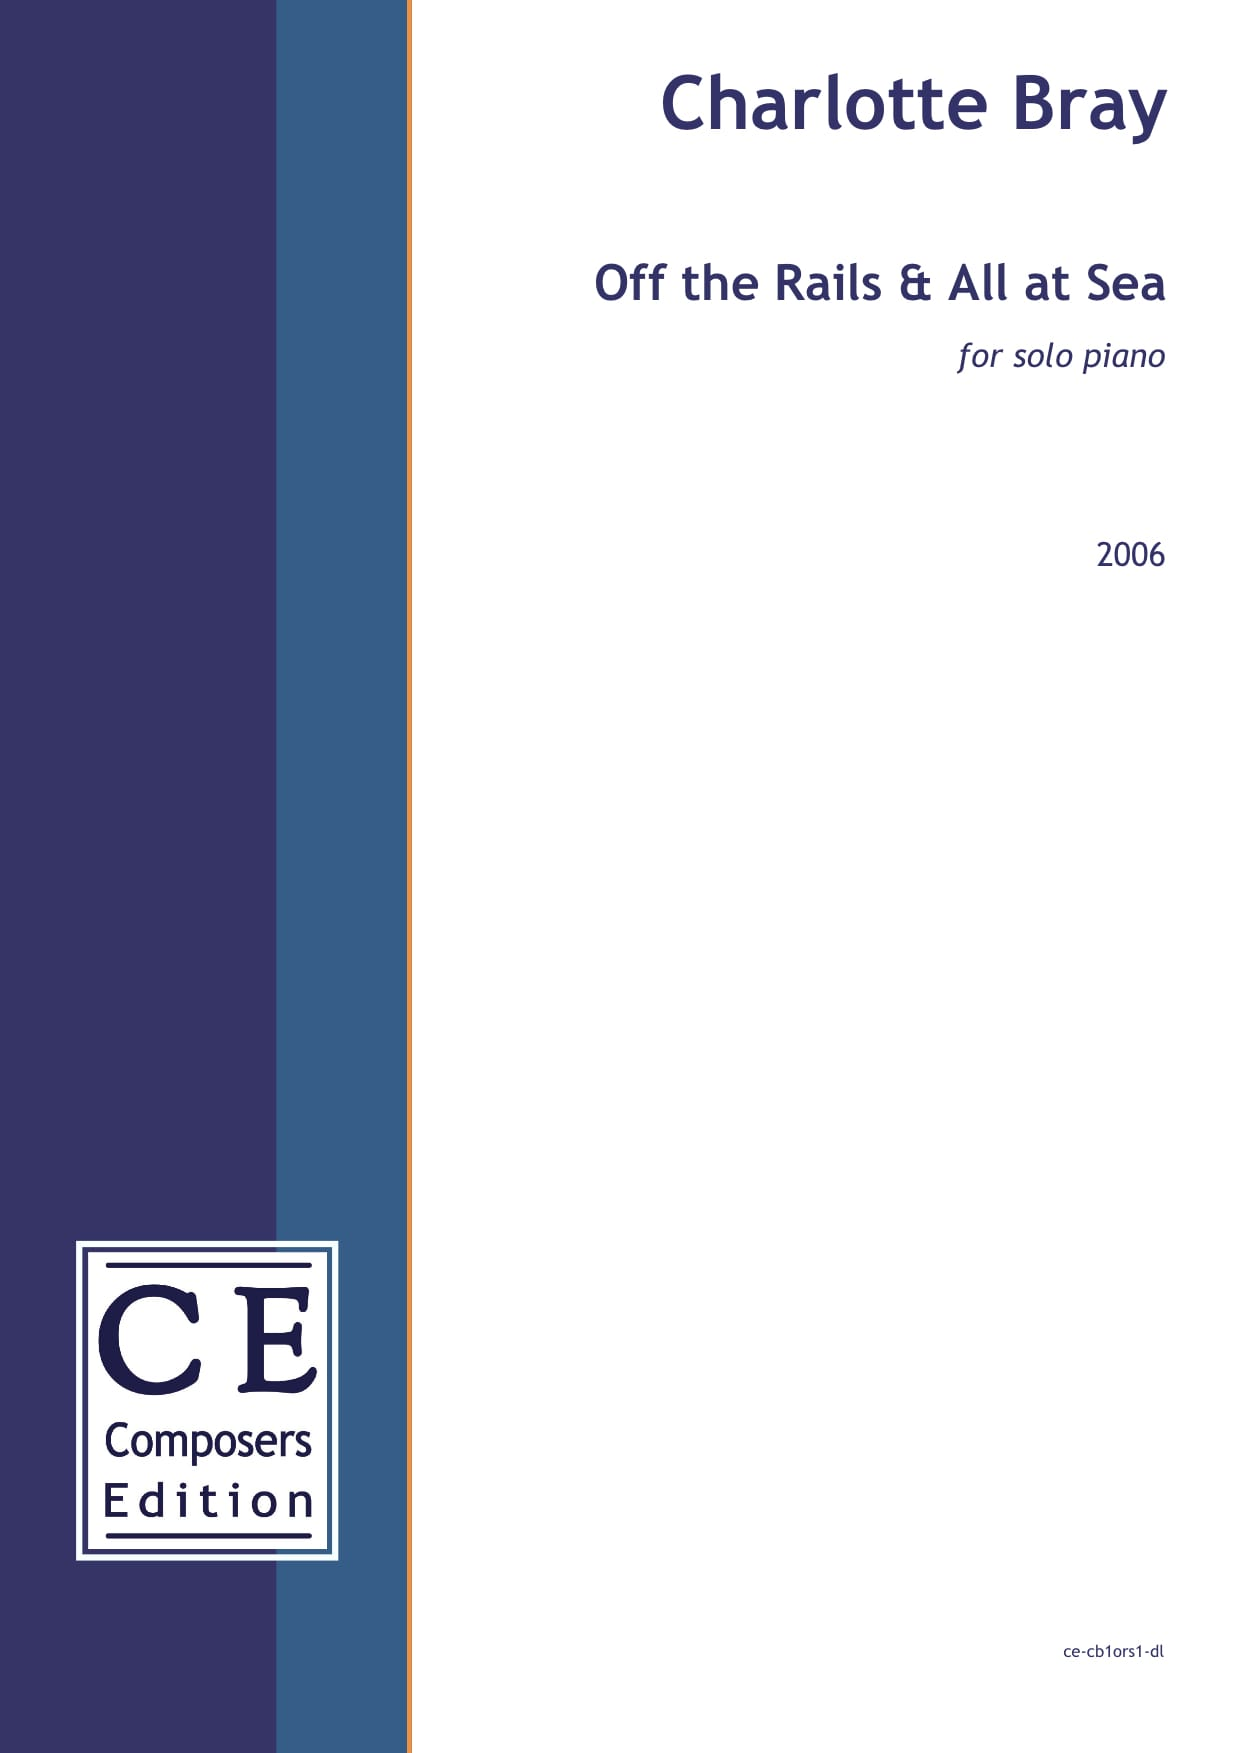 Charlotte Bray: Off the Rails & All at Sea for solo piano